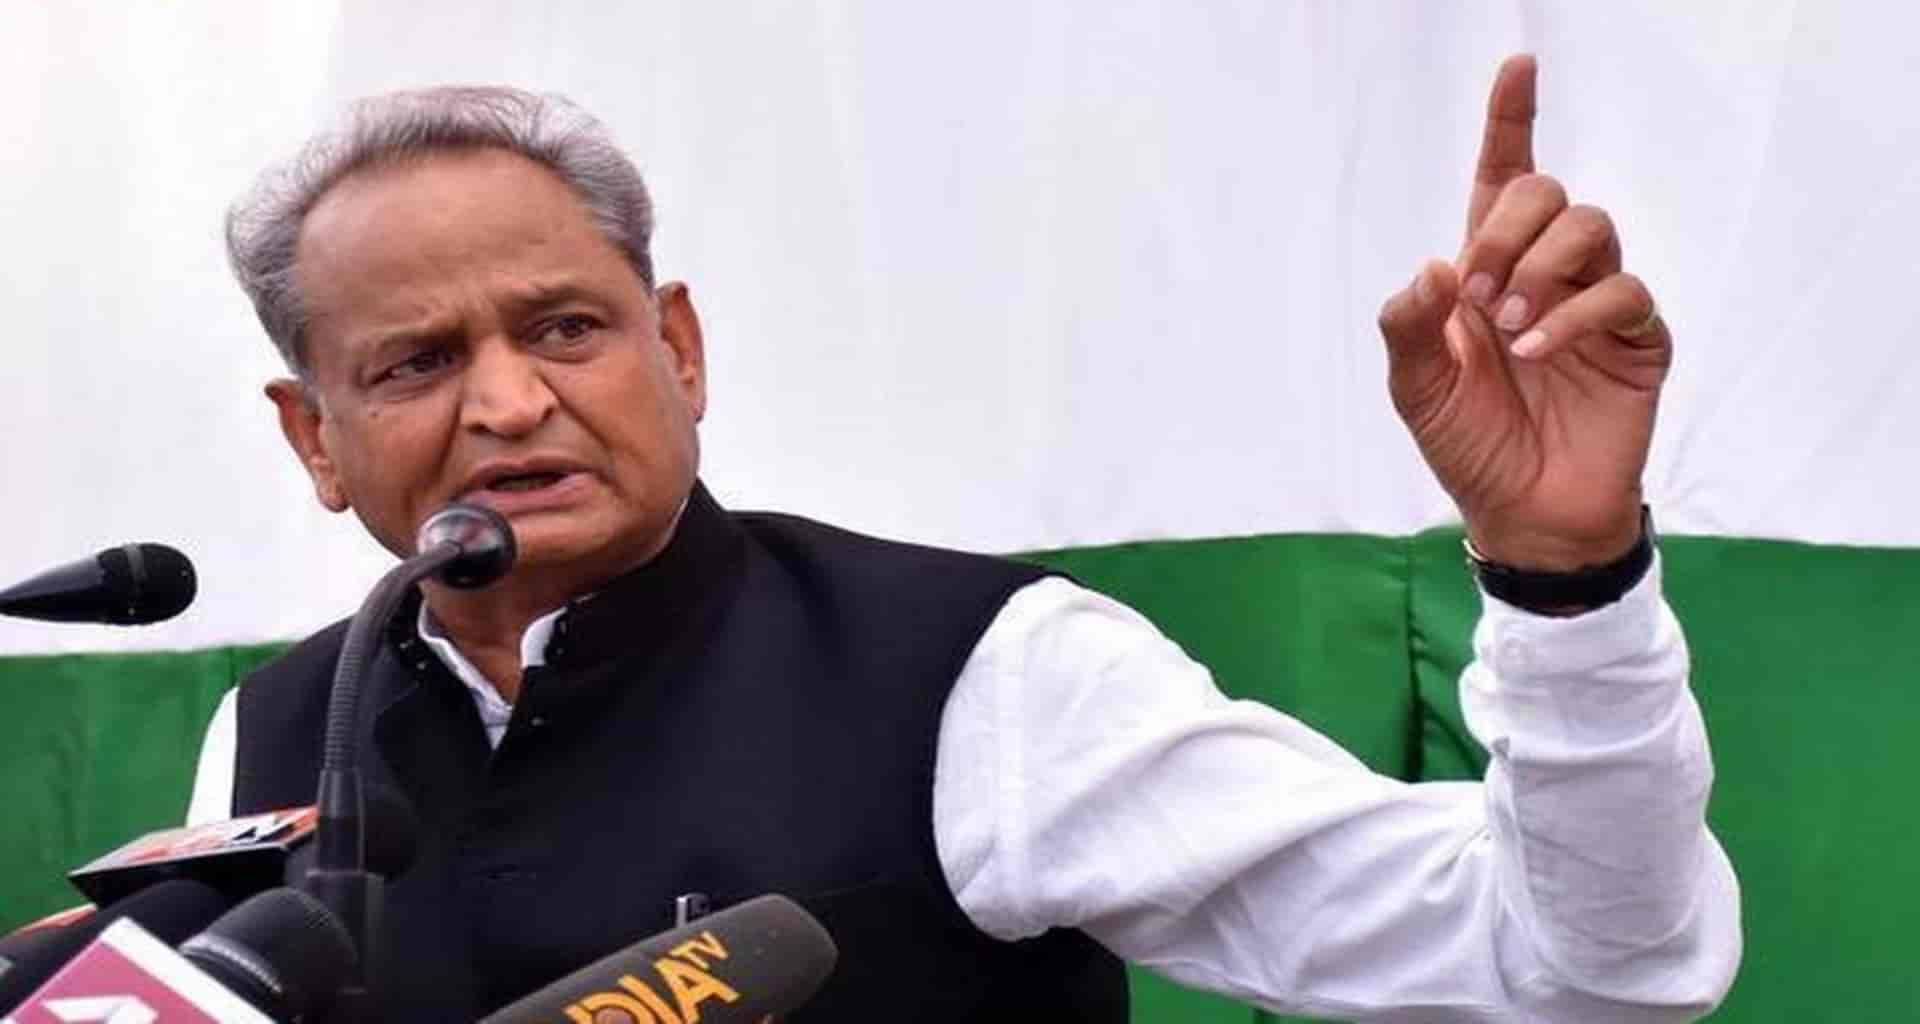 Rajasthan Government Crisis: CM Gehlot said, protest outside PM's residence if required